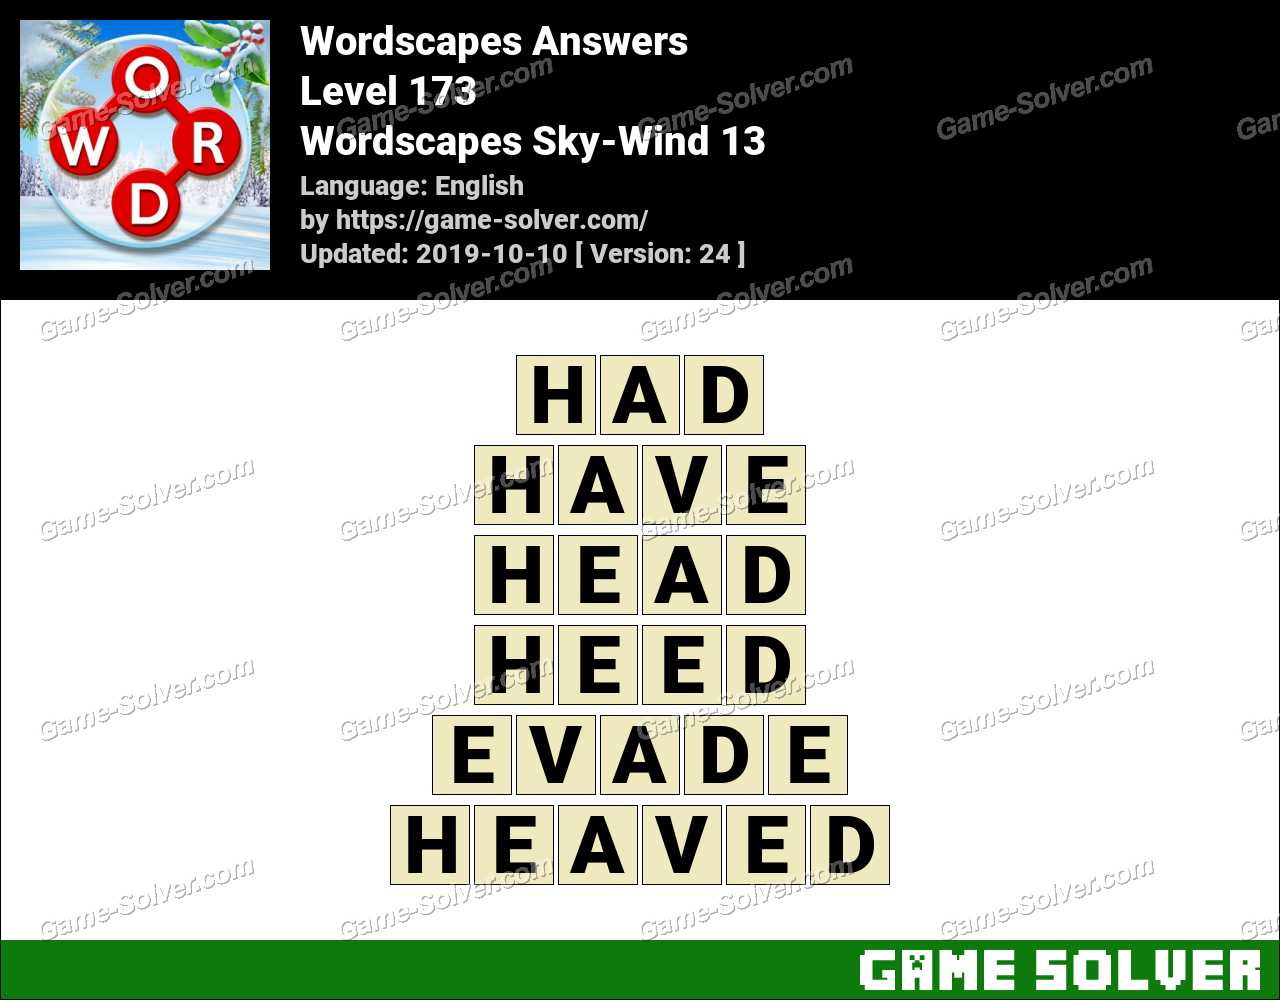 Wordscapes Sky-Wind 13 Answers